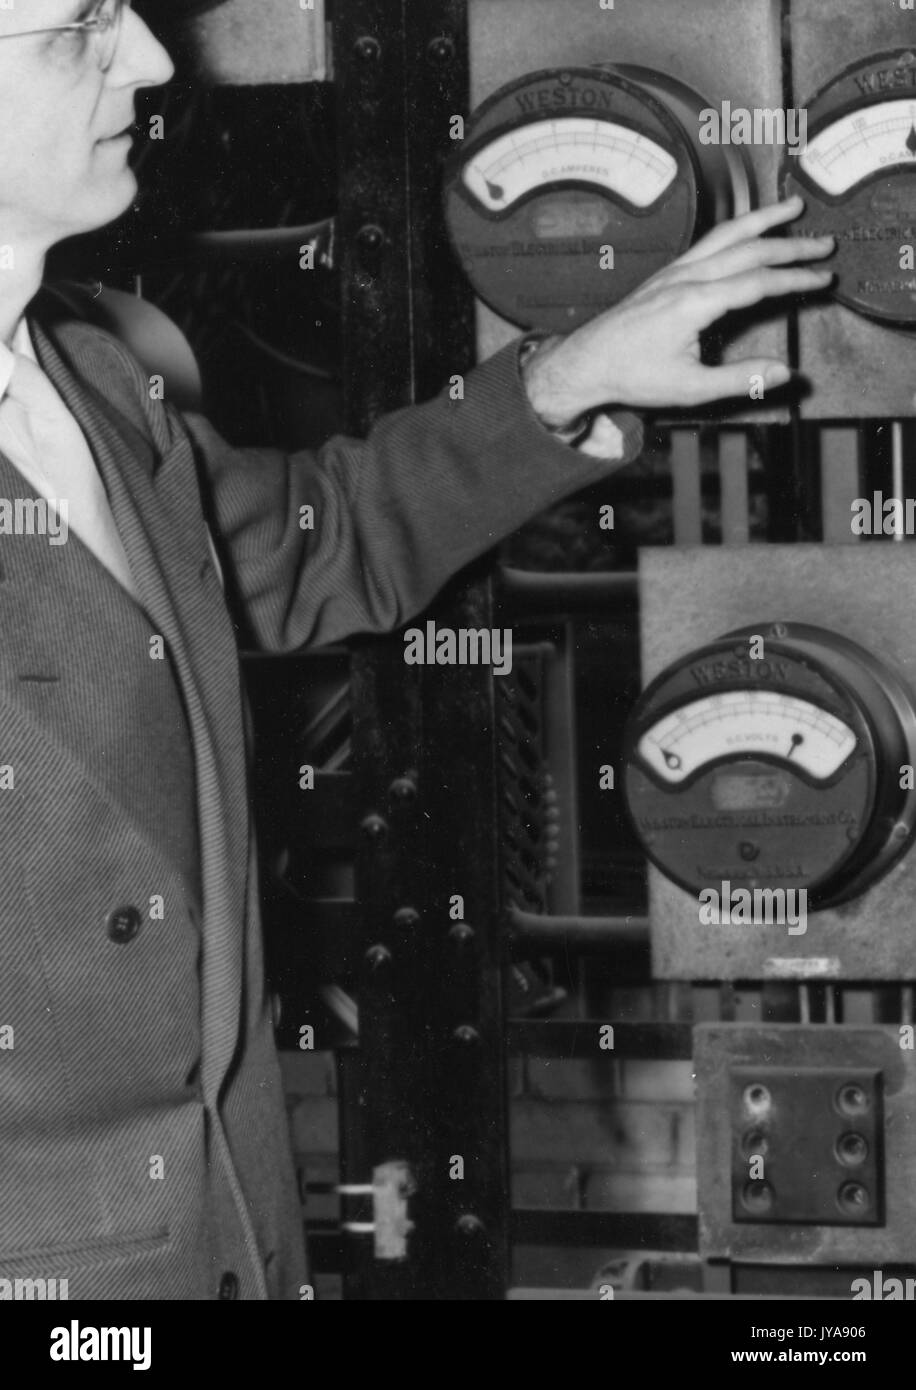 American television host Lynn Poole on set of the Johns Hopkins Science review television program looking at an analog gauge, 1951. - Stock Image